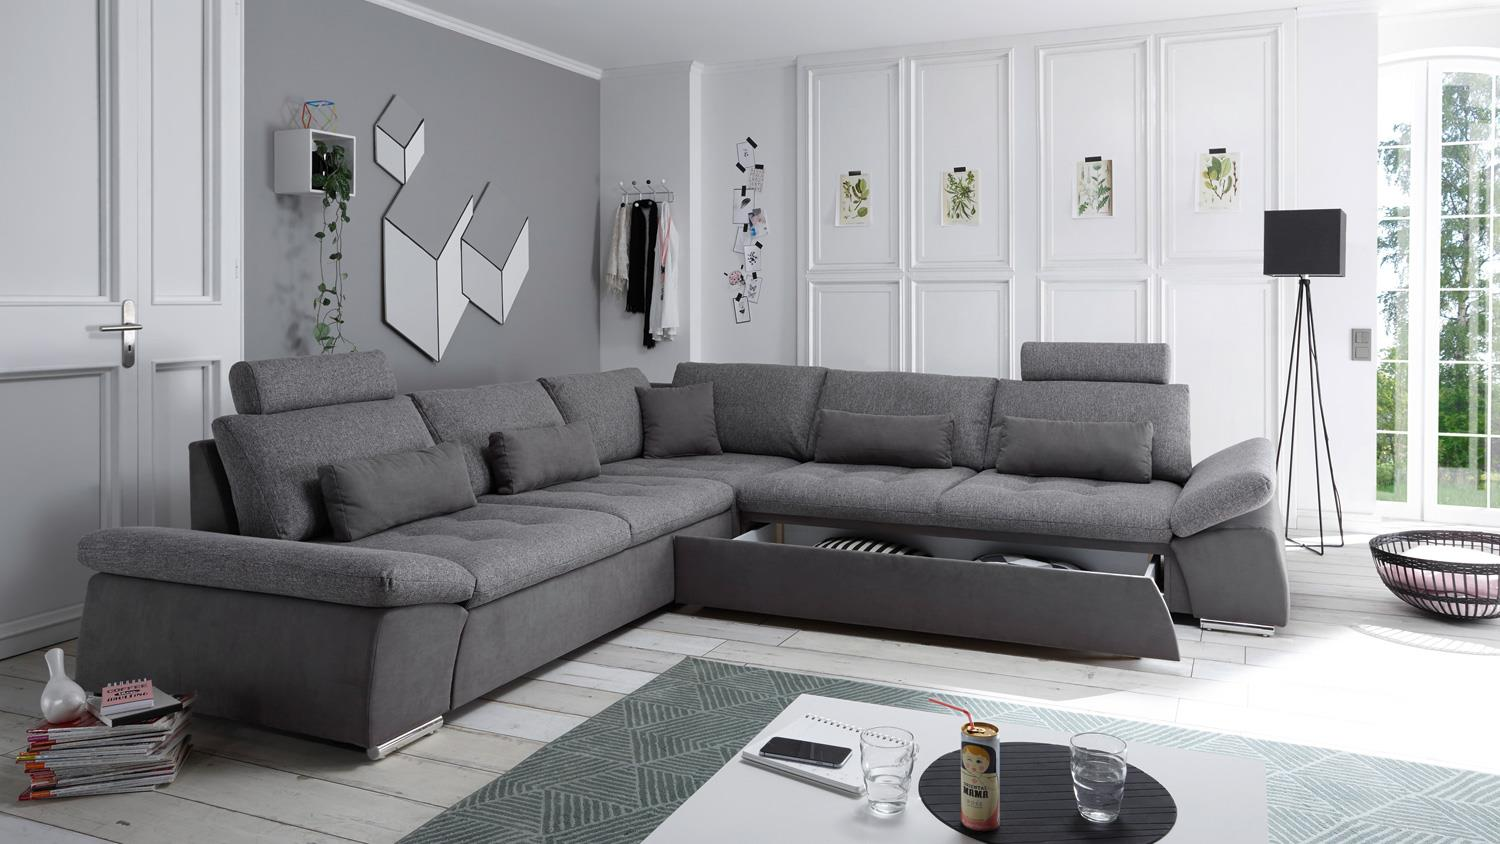 ecksofa lissabon stoff grau nosagfederung schlaffunktion. Black Bedroom Furniture Sets. Home Design Ideas